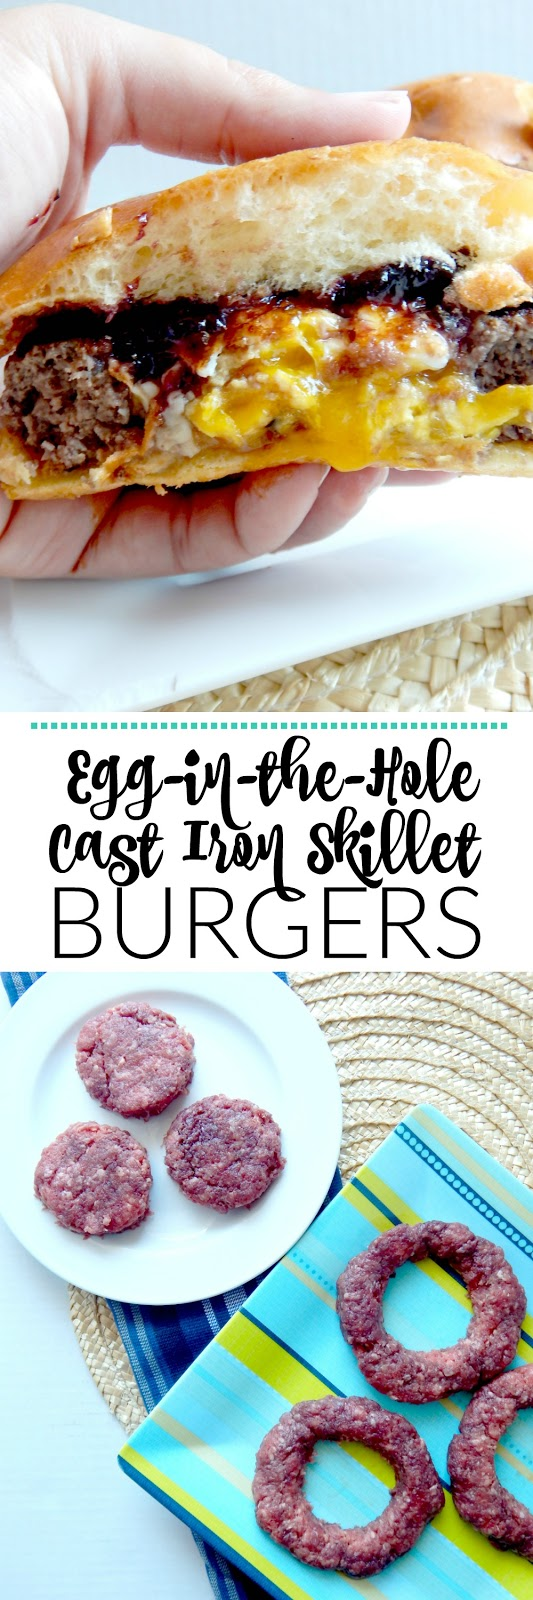 Egg-in-the-Hole Cast Iron Skillet Burgers...a deliciously seasoned hamburger with a cracked egg fried in the middle.  Perfection in a burger! (sweetandsavoryfood.com)